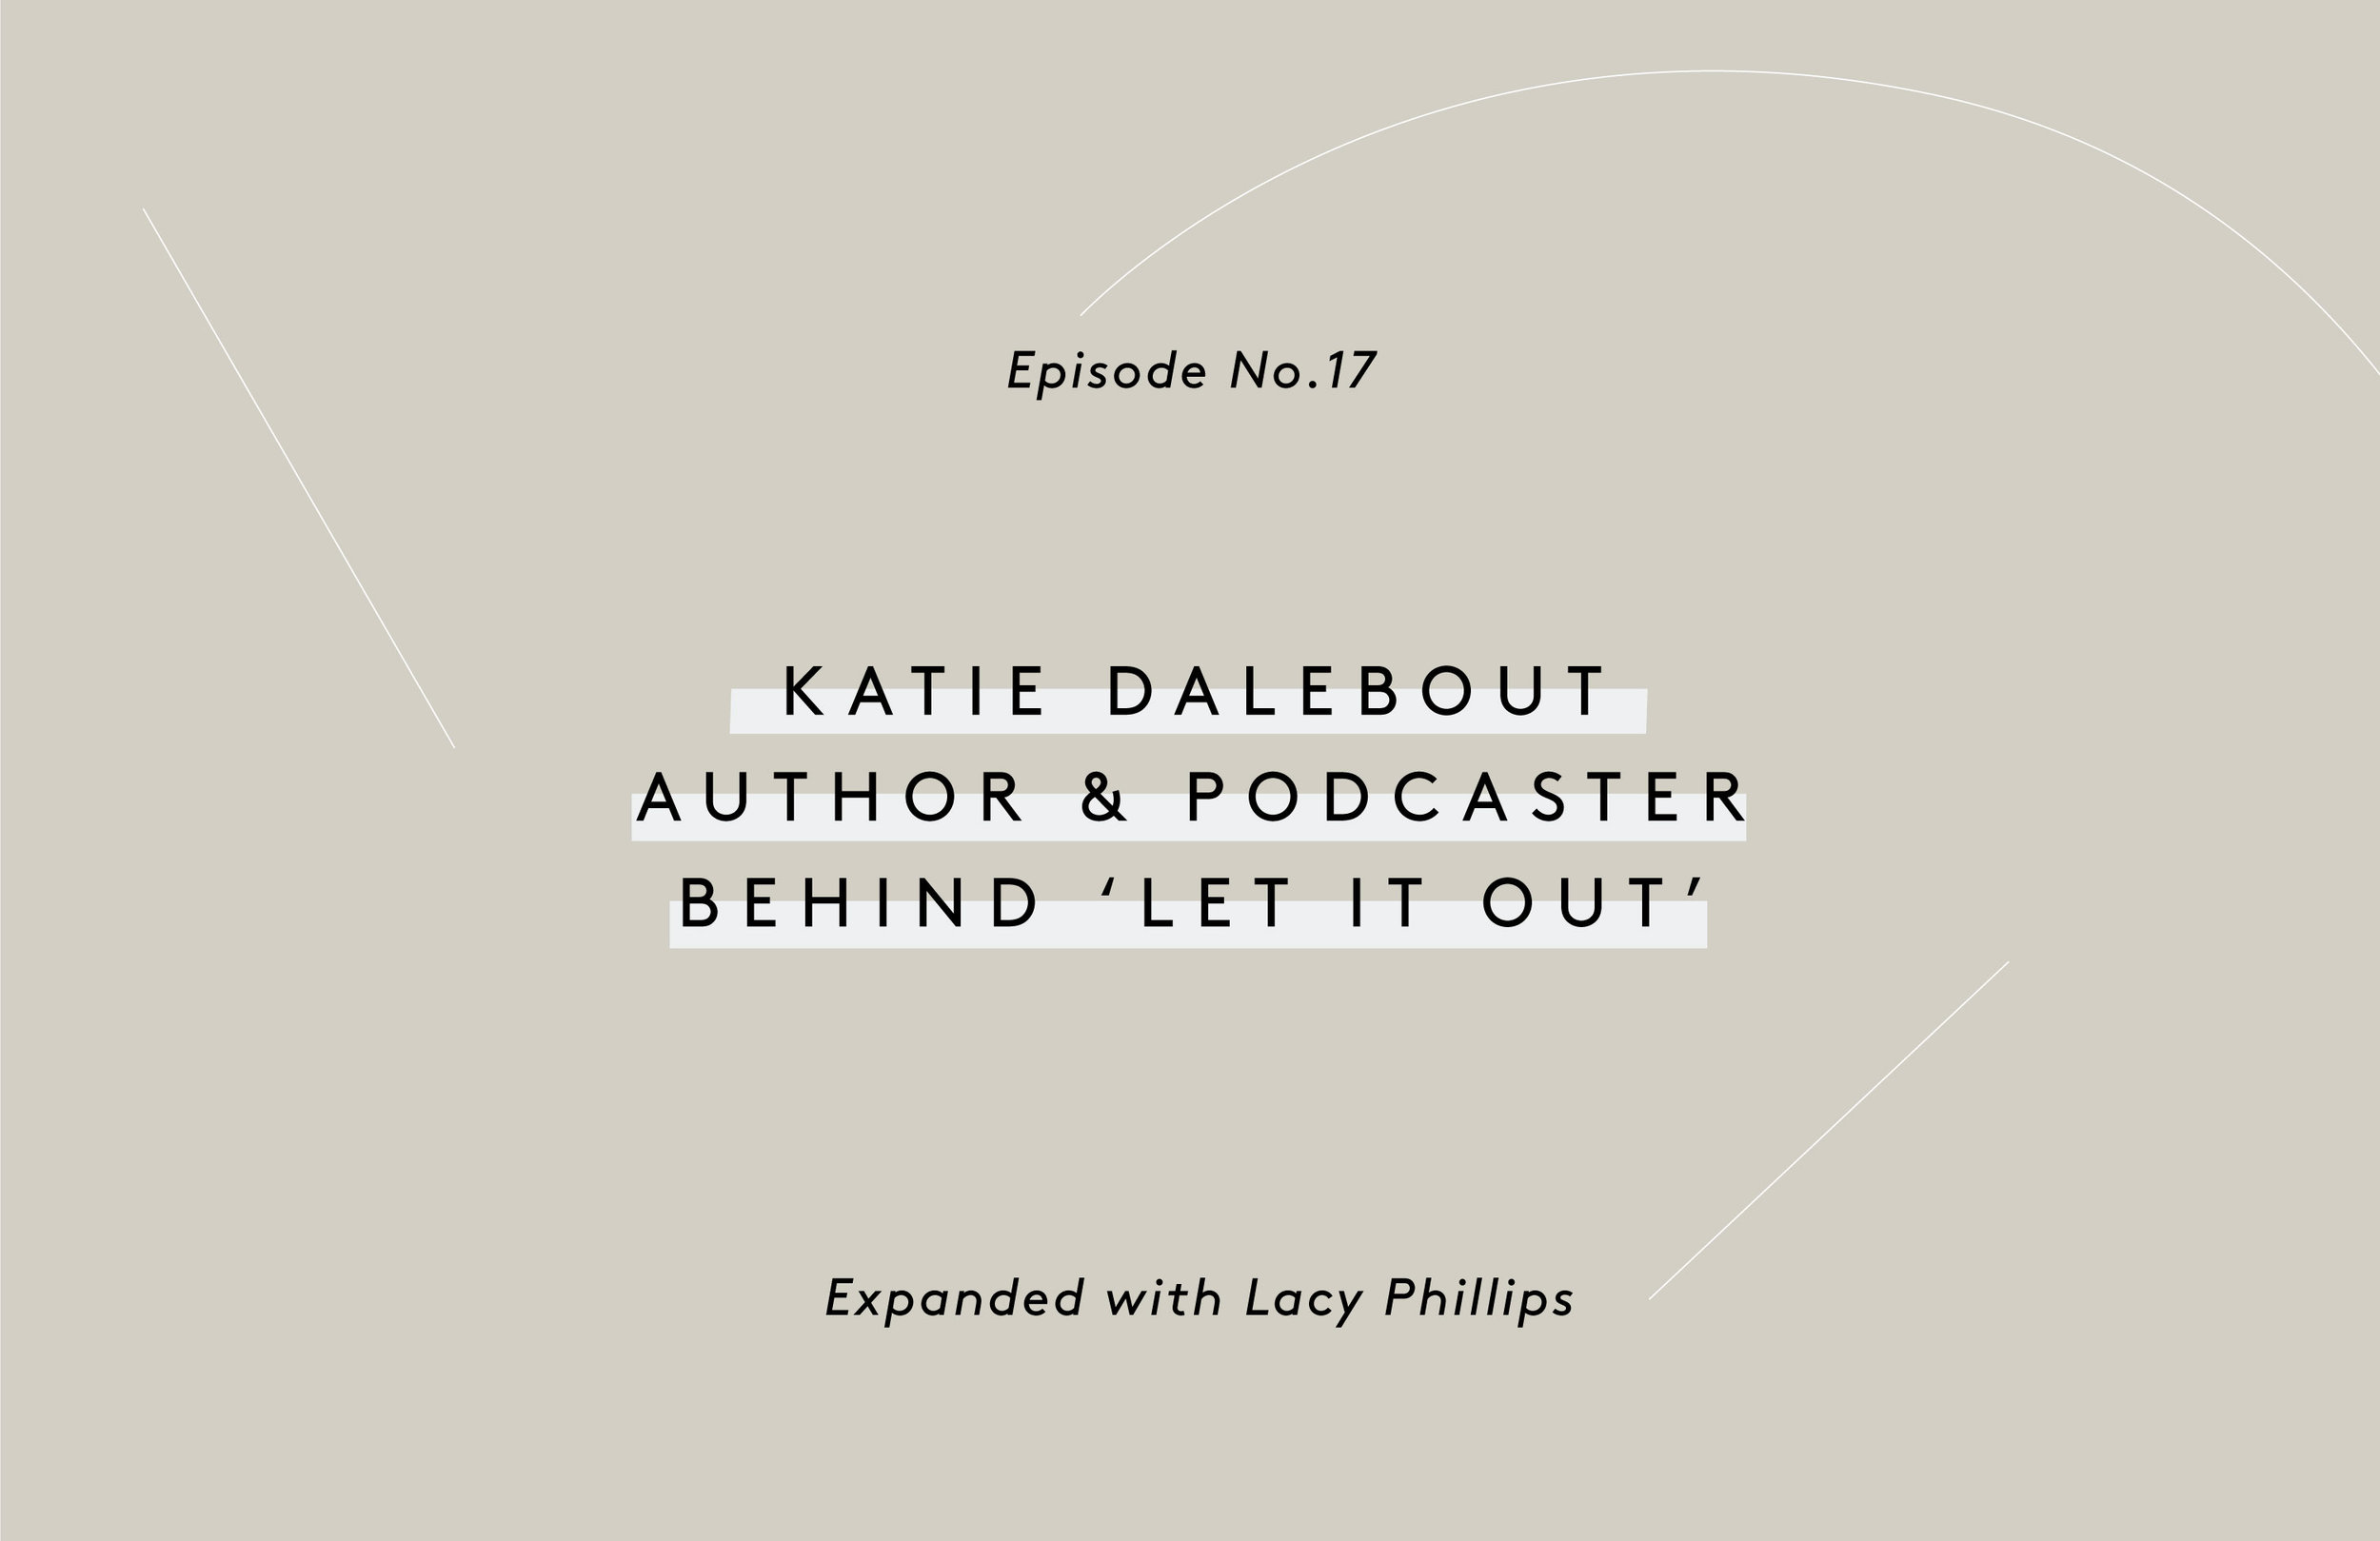 Katie Dalebout expanded podcast